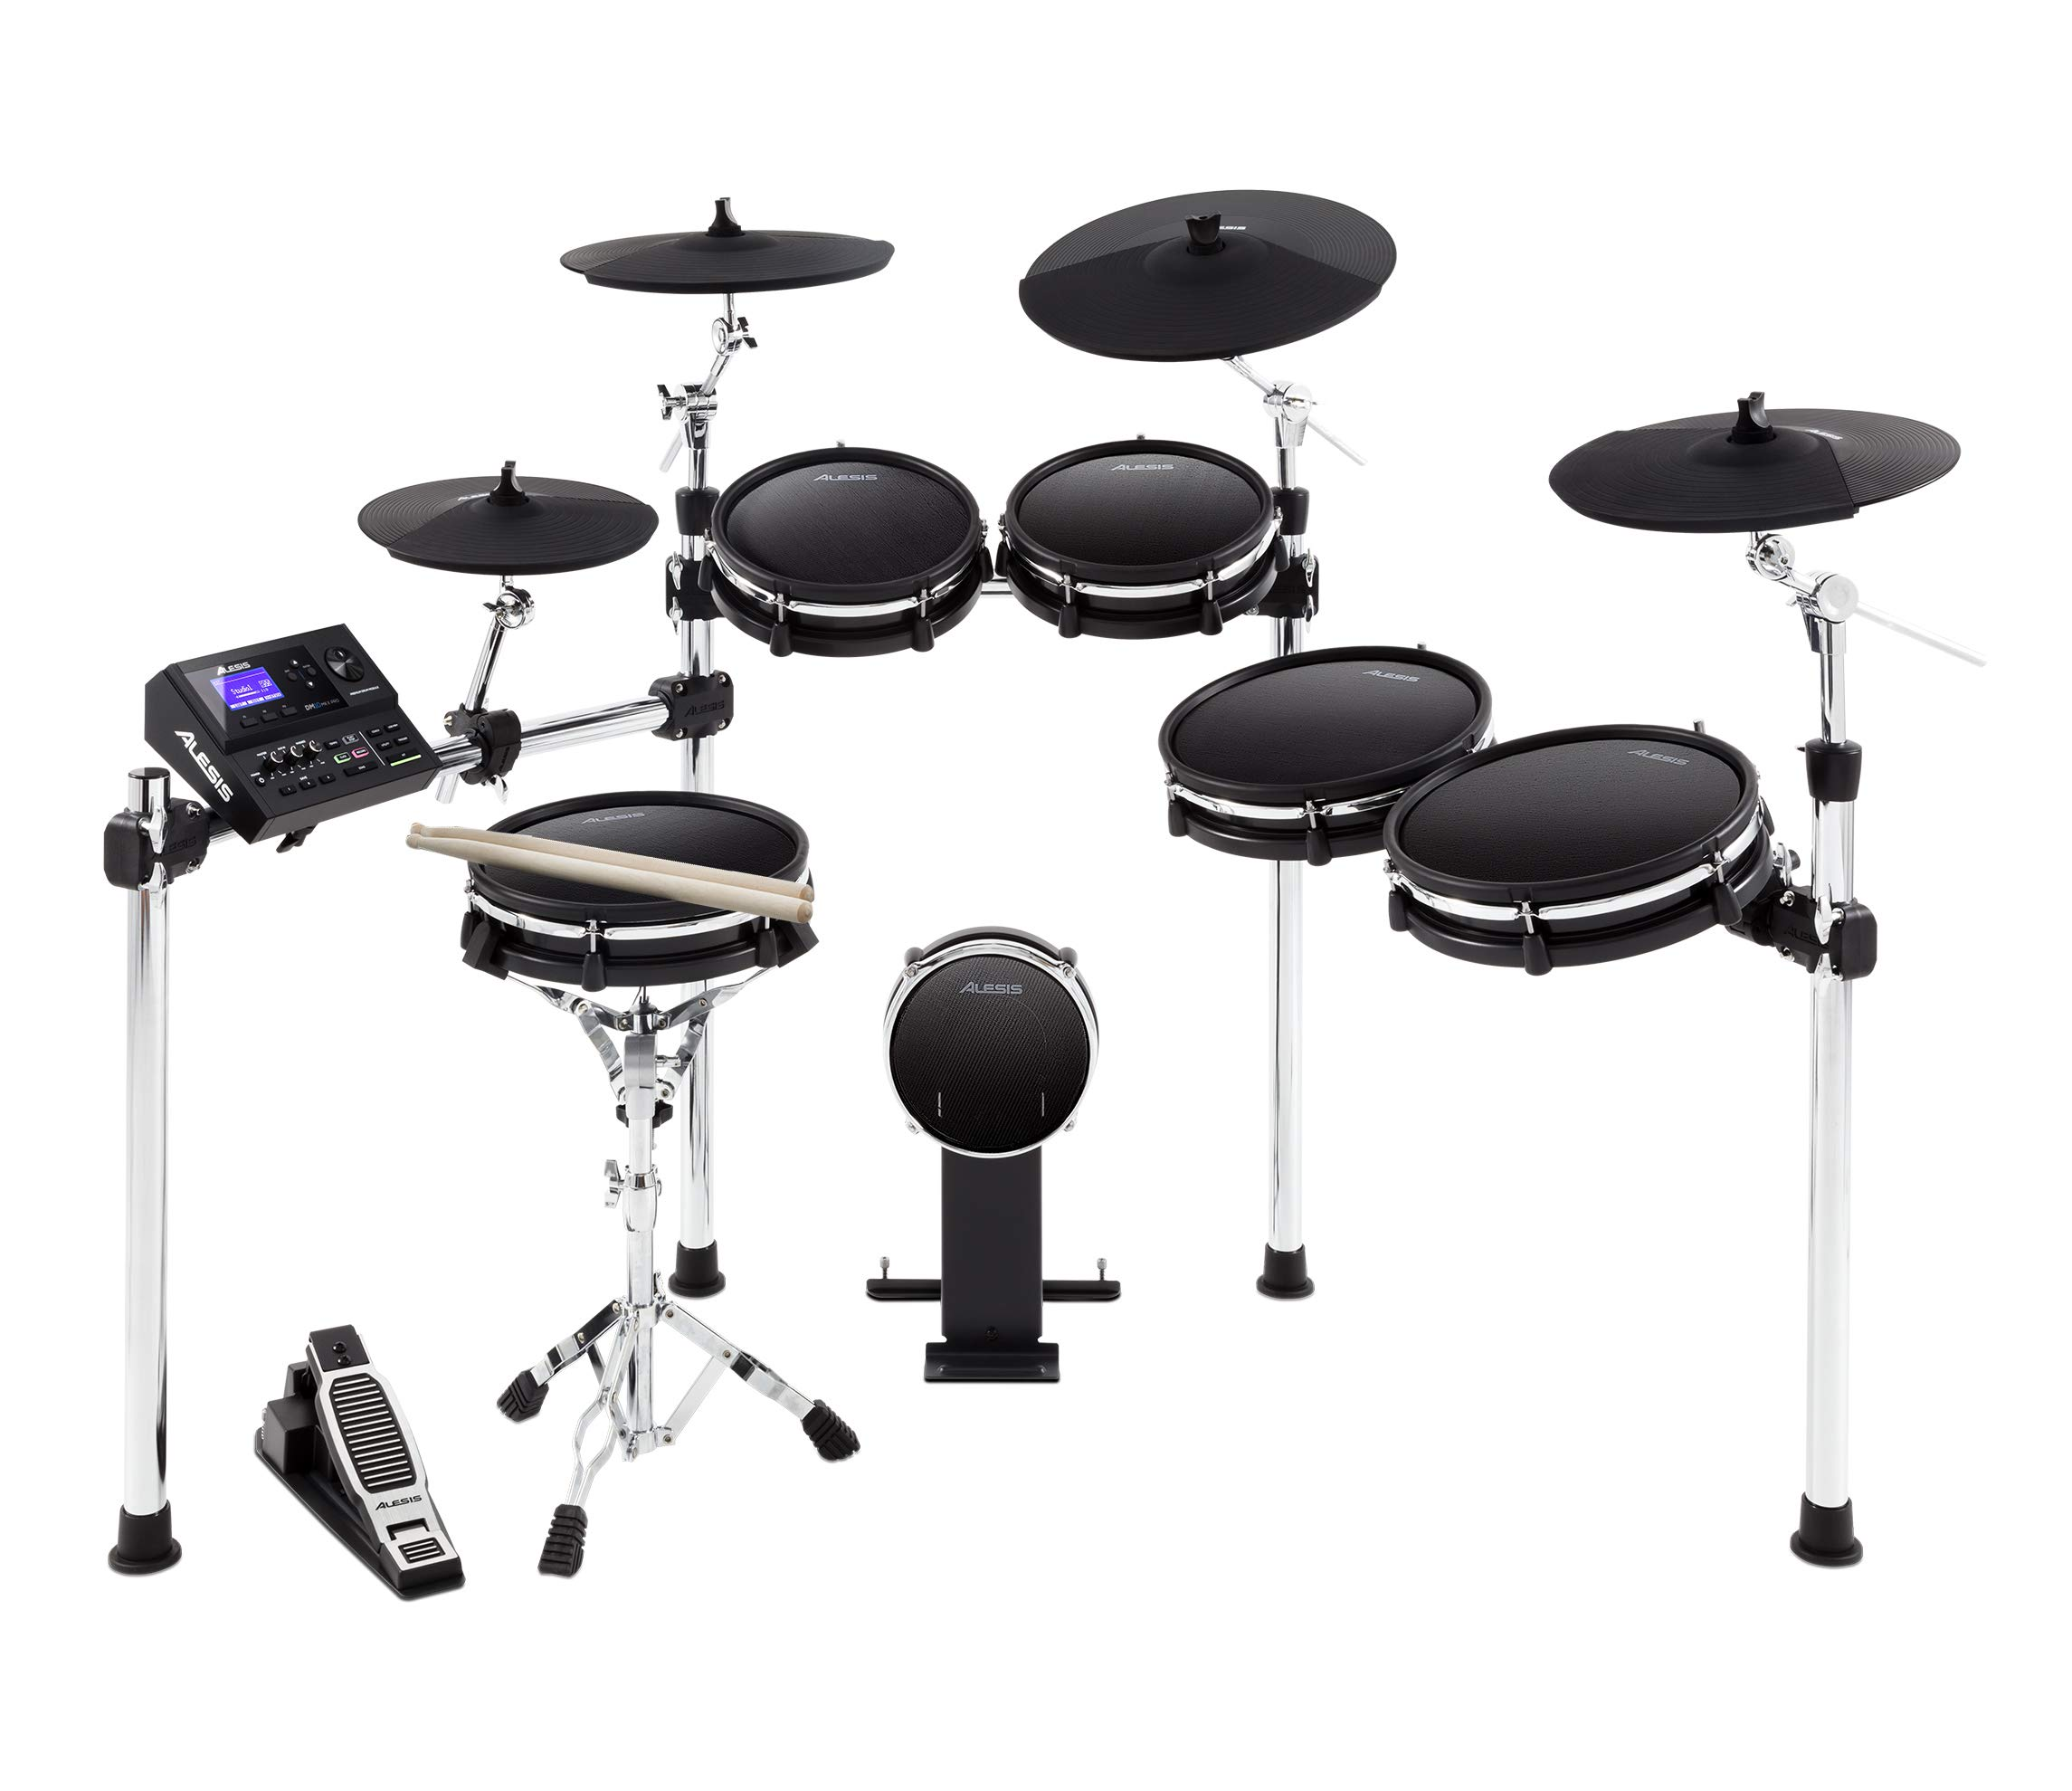 Alesis DM10 MKII Pro Kit | Ten-Piece Electronic Drum Kit with Mesh Heads by Alesis